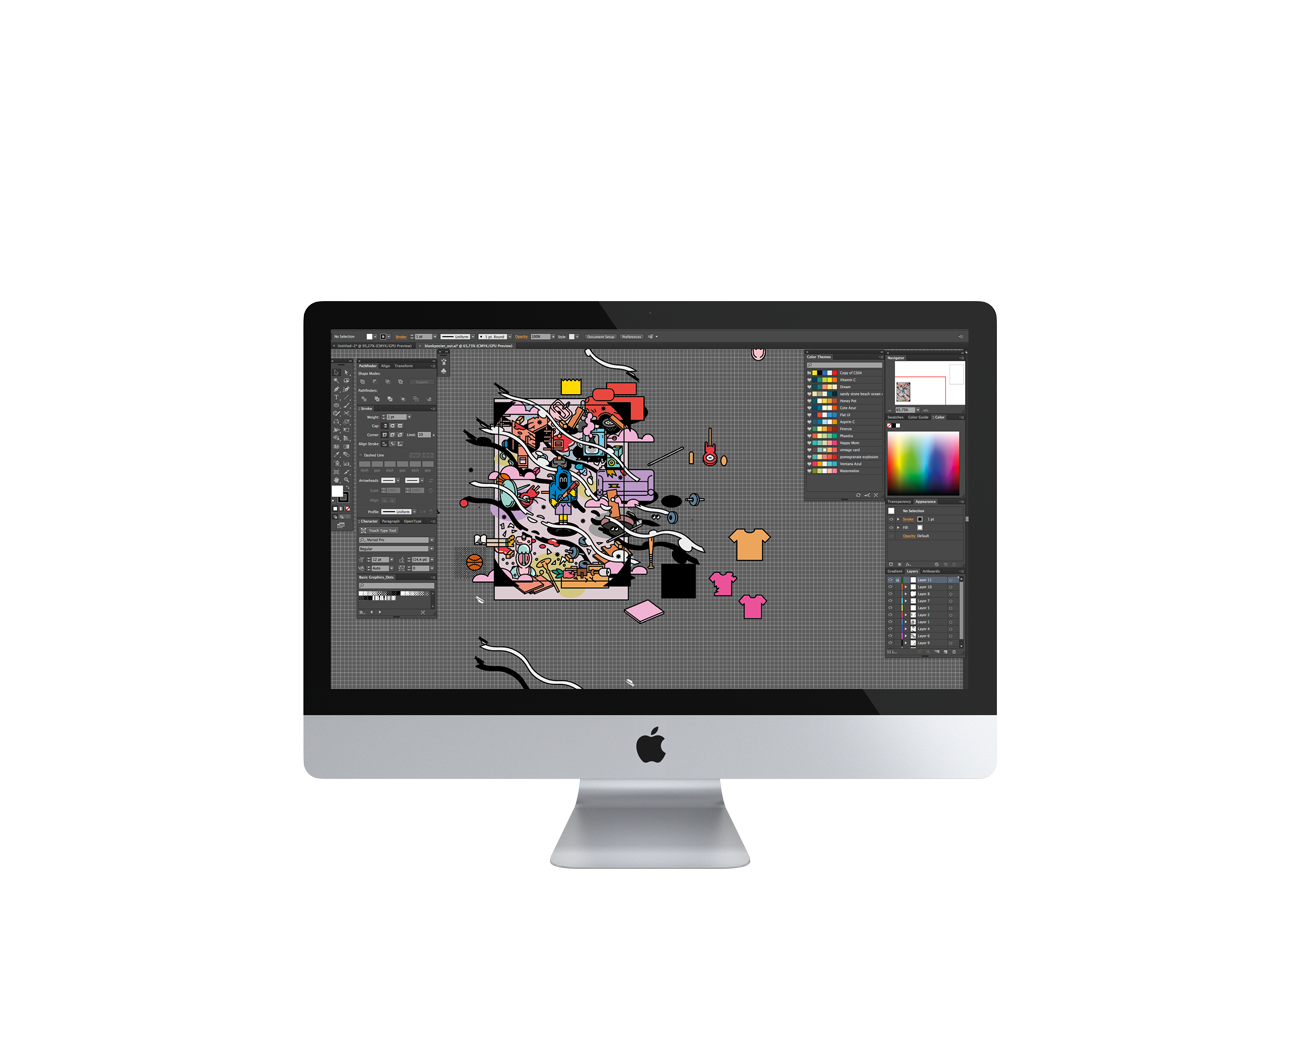 _blankposter_out_imac